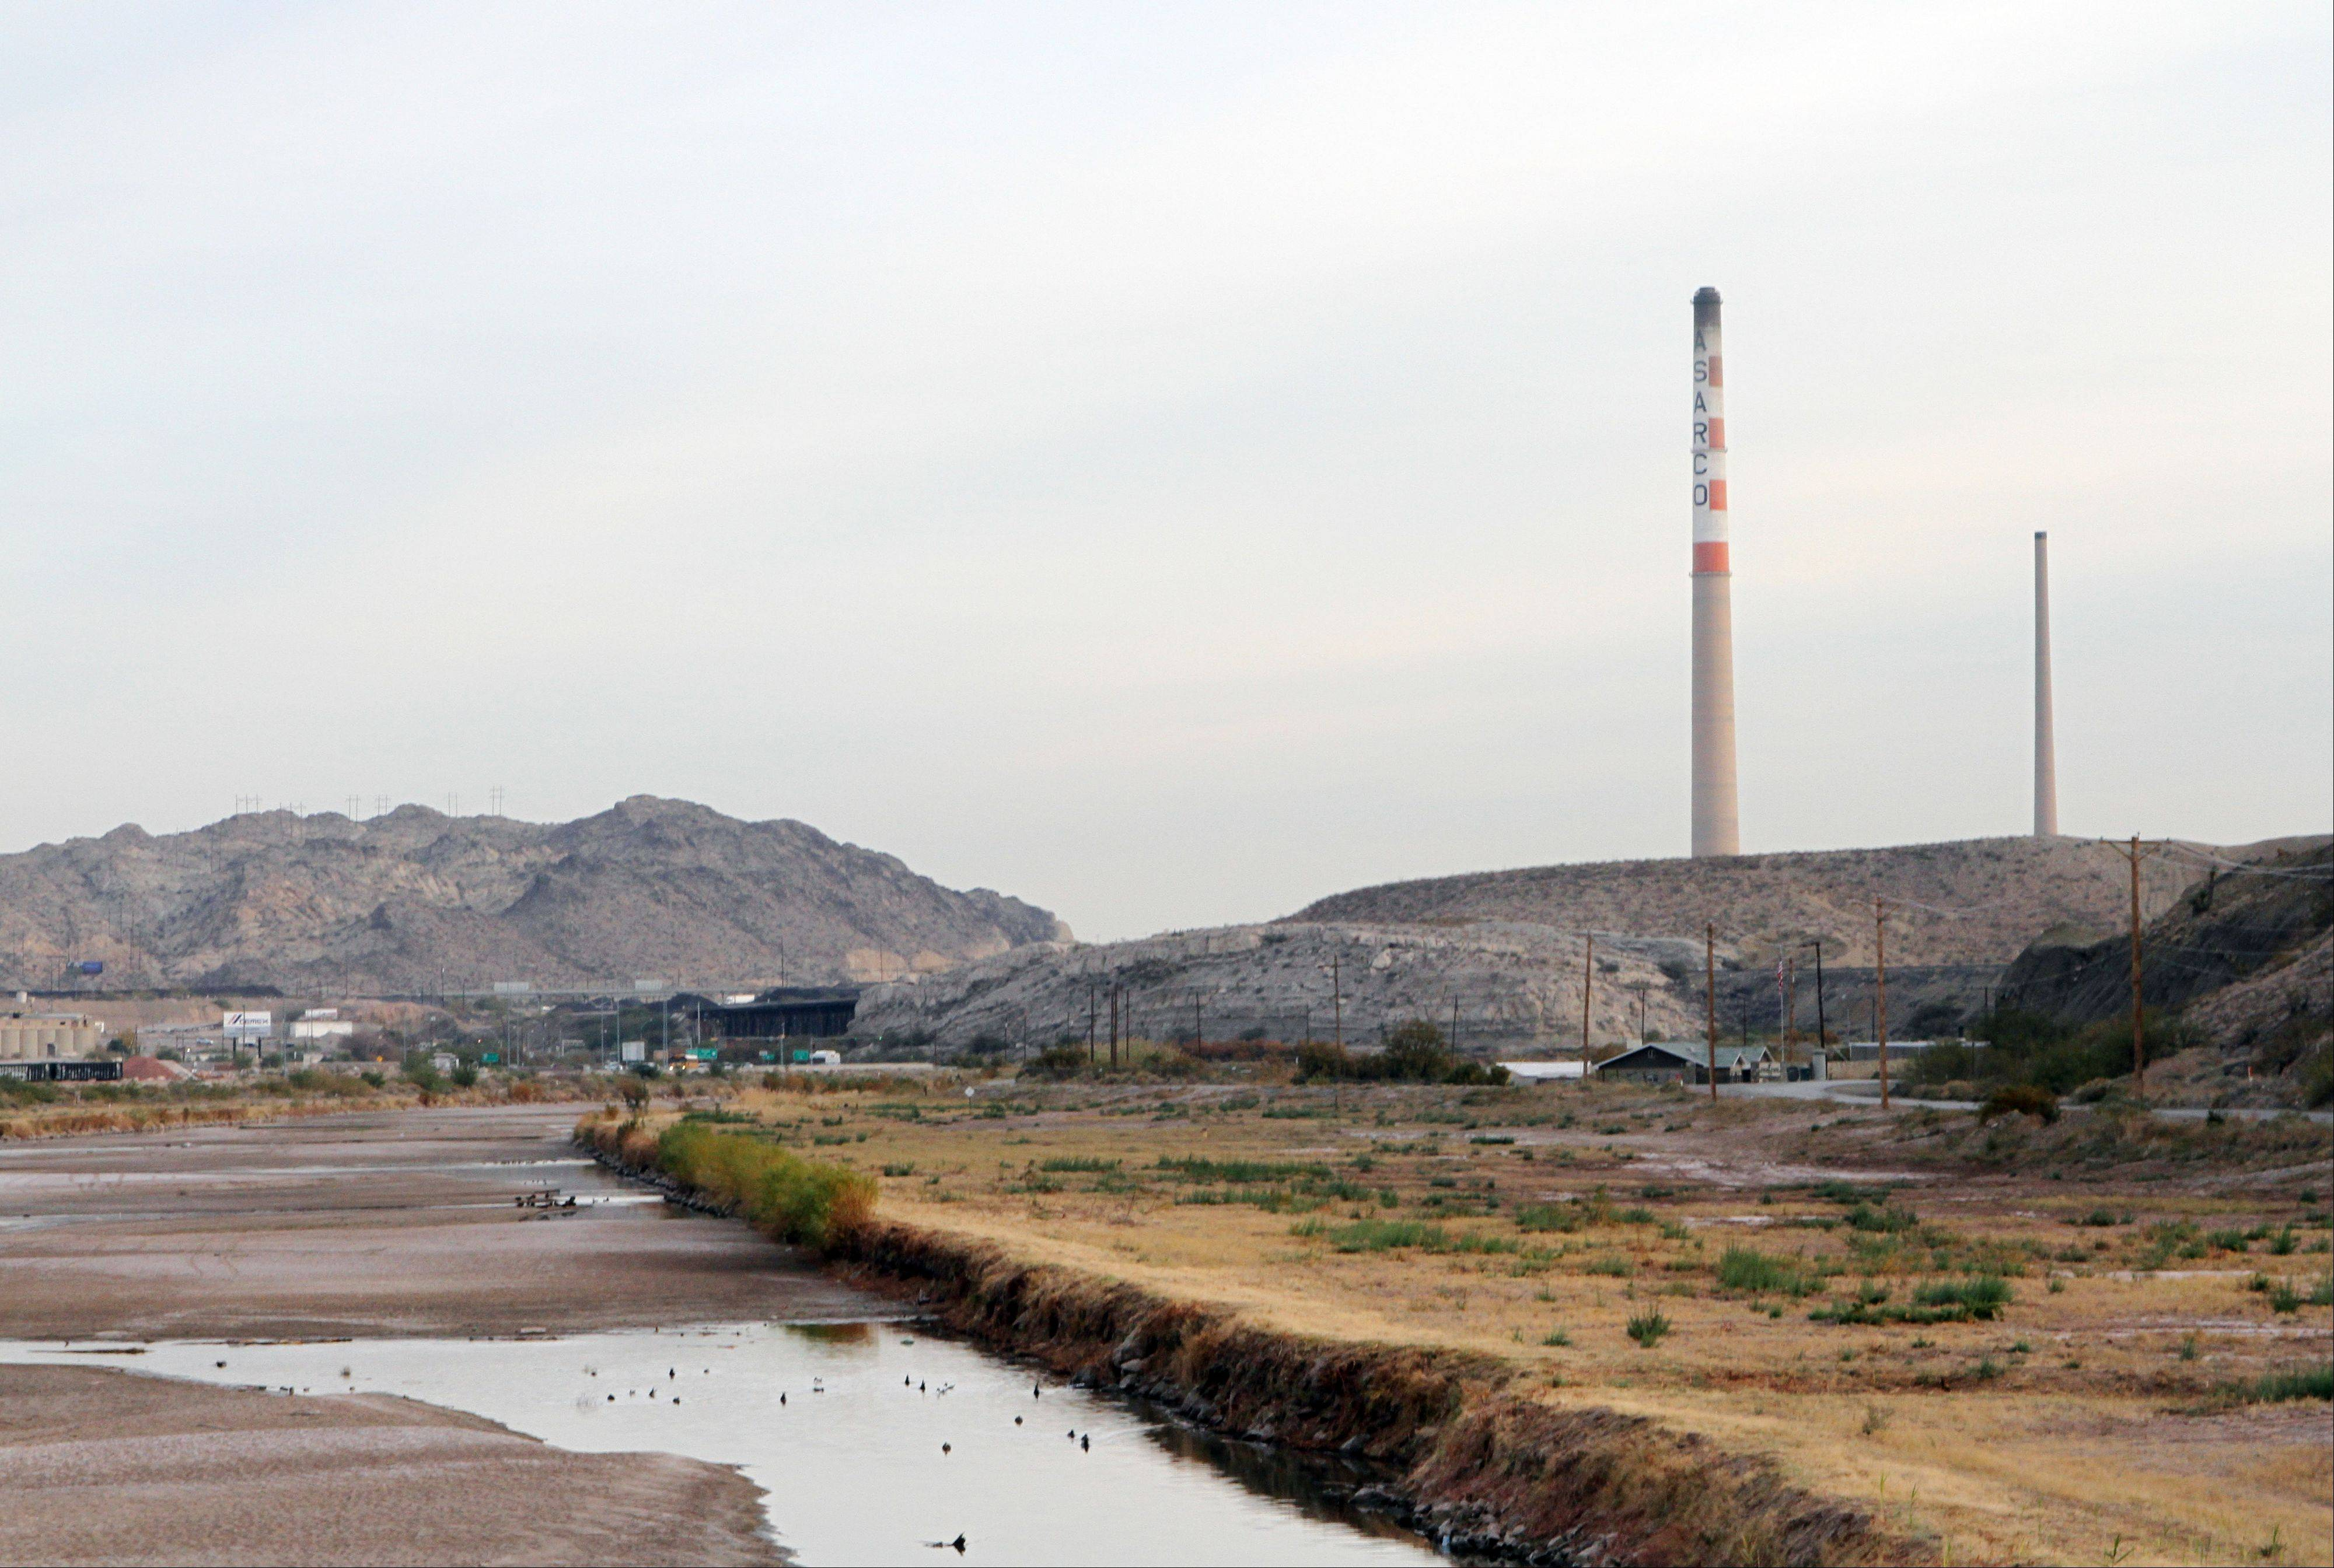 ASARCO copper smelter smokestacks near the Rio Grande in El Paso, Texas.